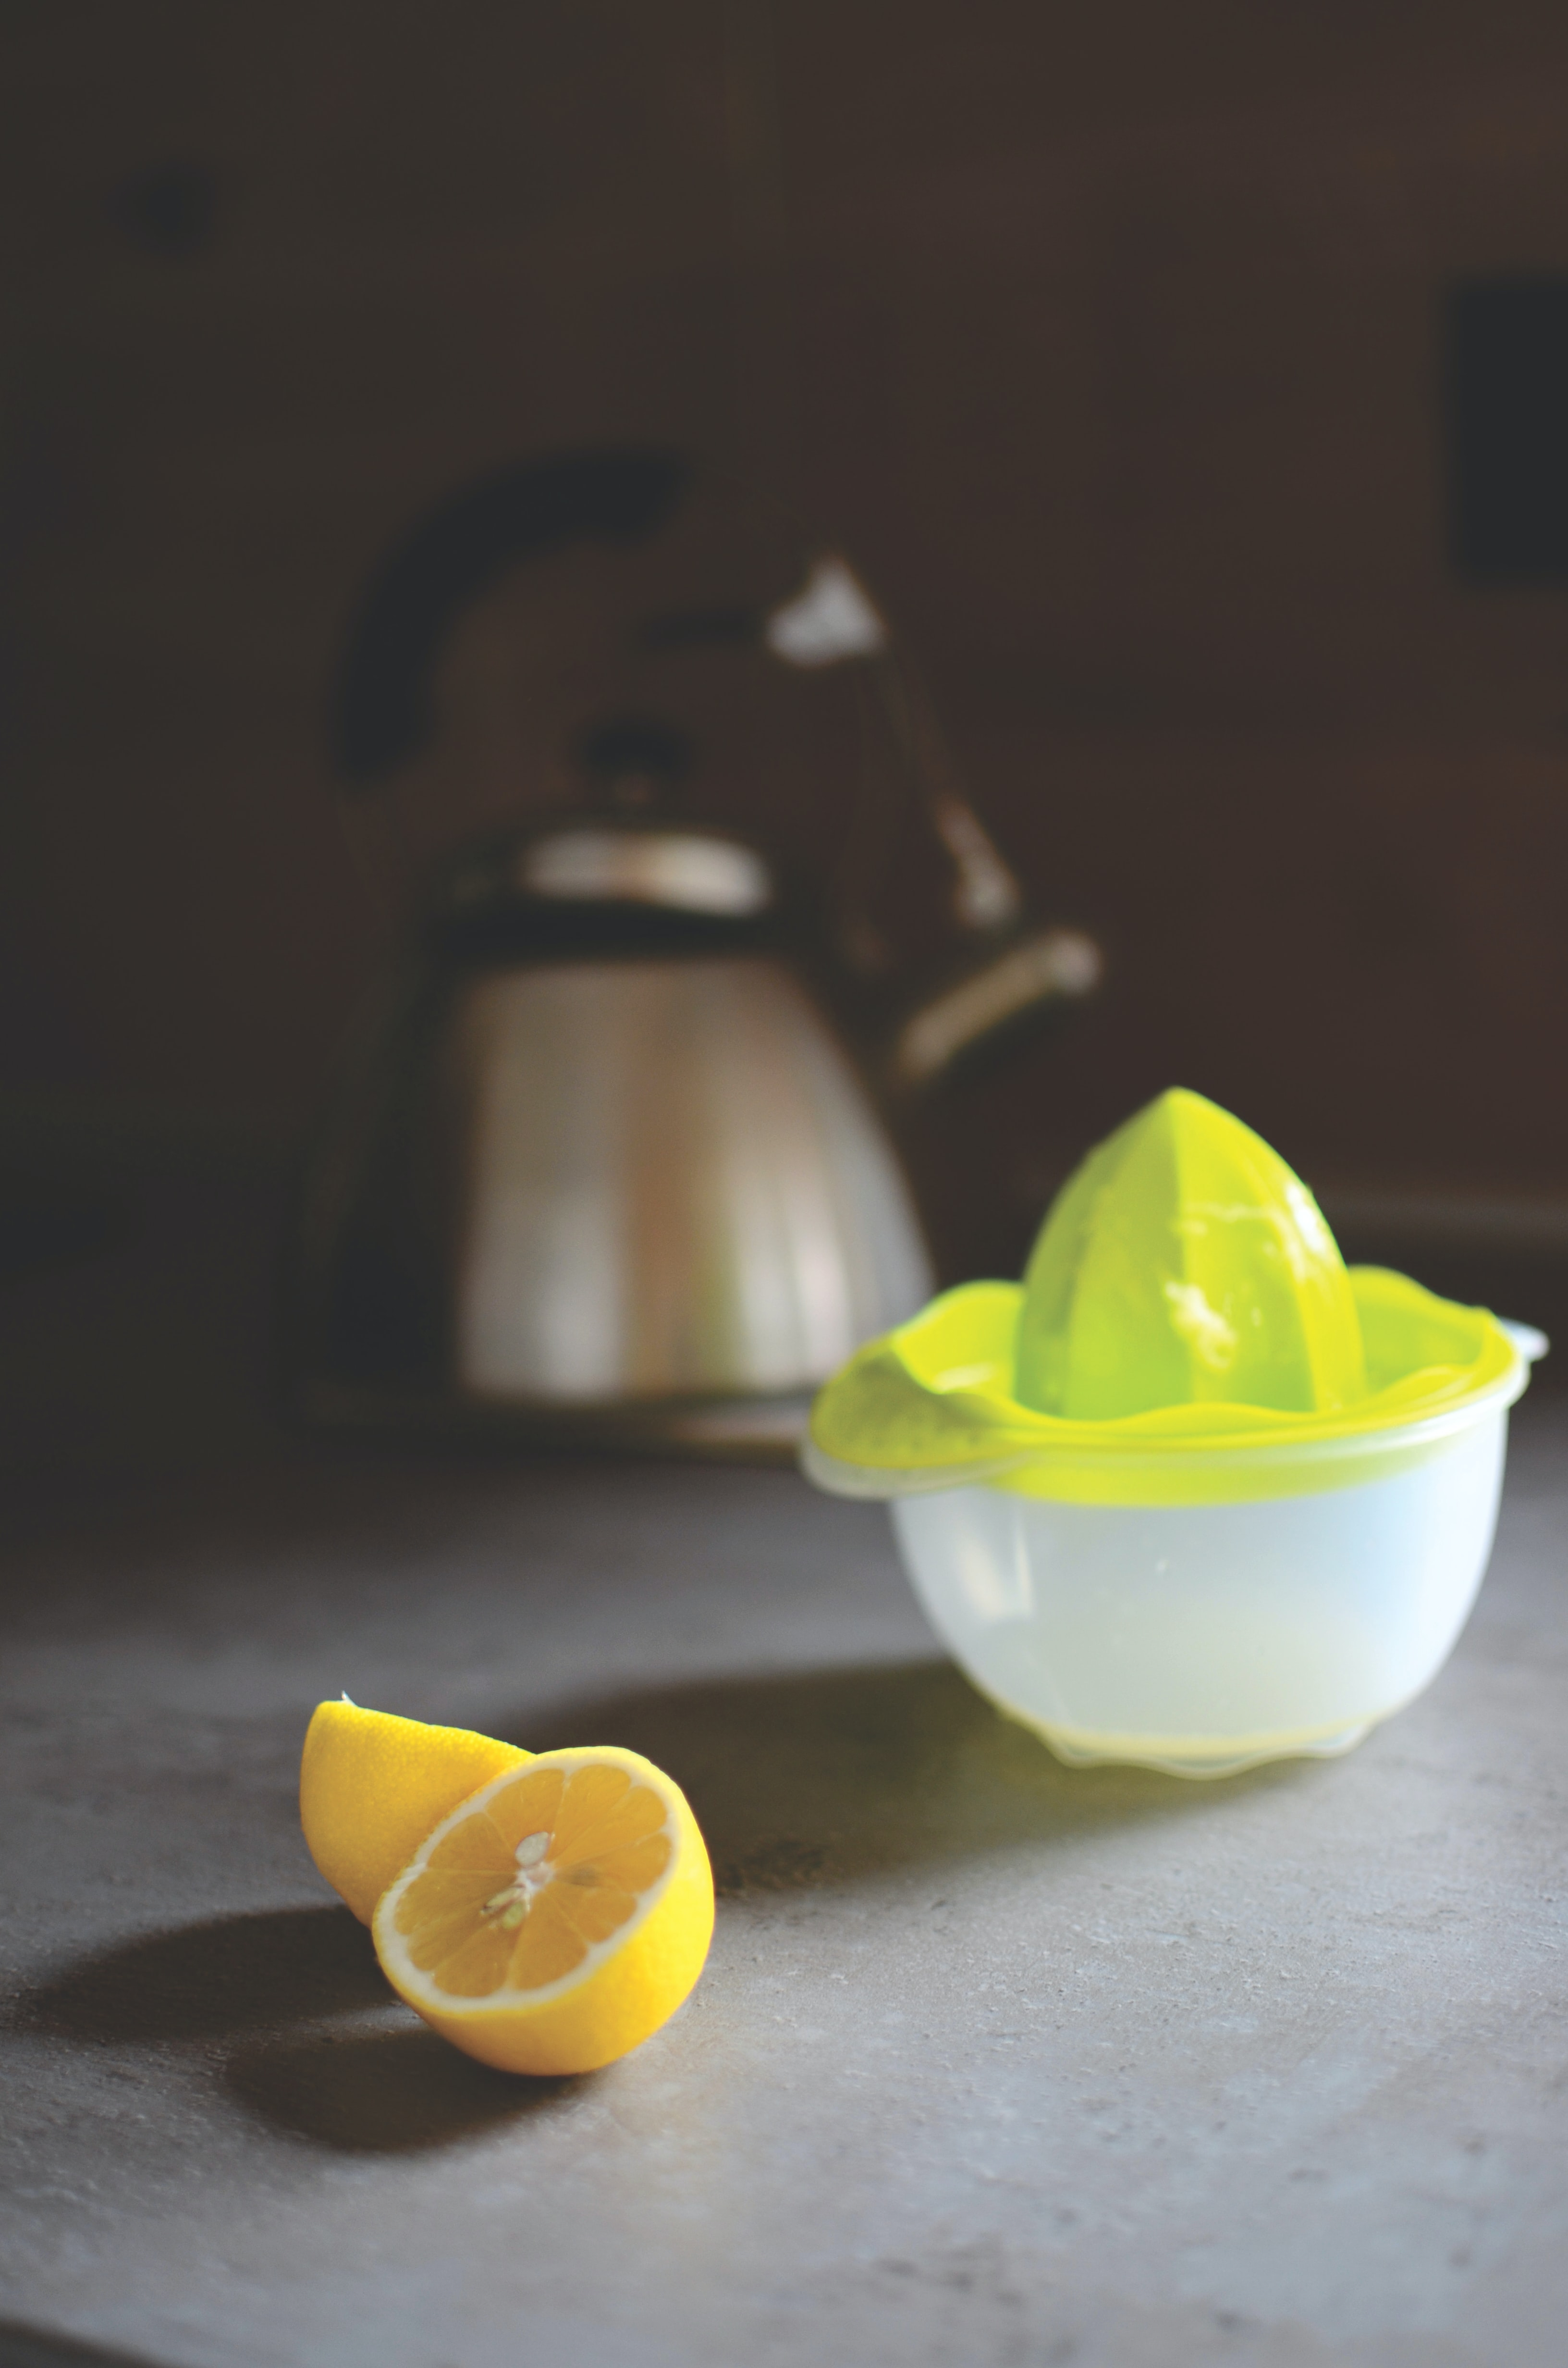 two slices of lemon beside green juicer with kettle in the background